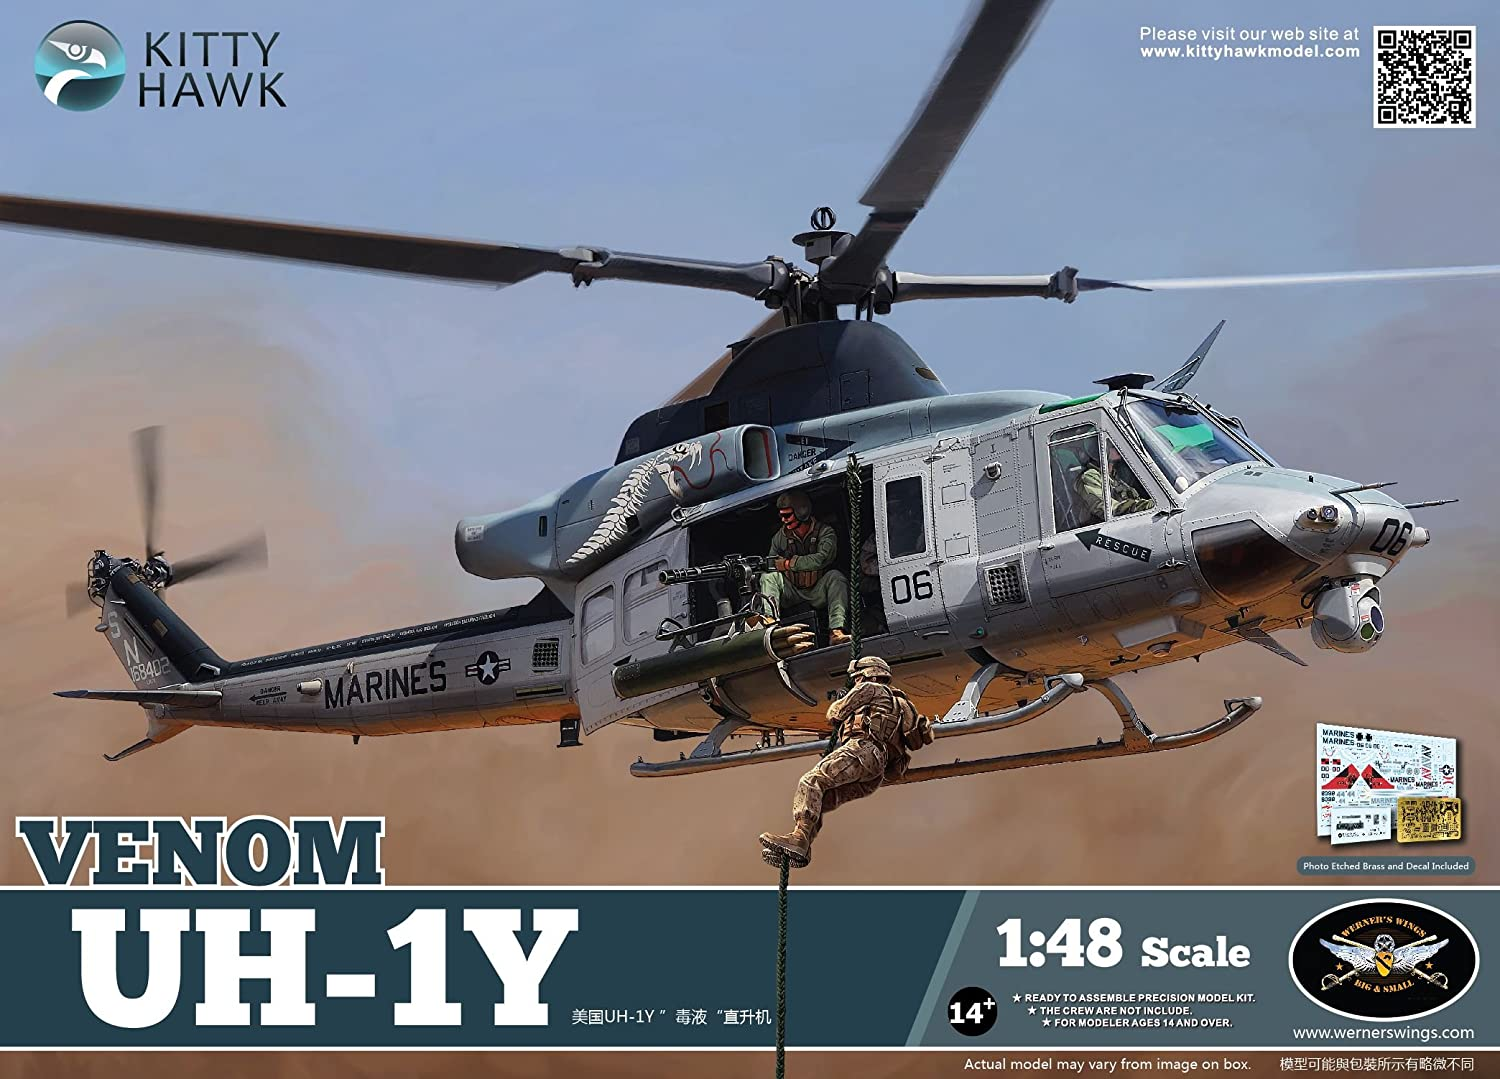 KTH80124 1:48 Kitty Hawk UH-1Y Venom Helicopter [MODEL BUILDING KIT] картридж canon pgi 2400xlbk черный [9257b001]